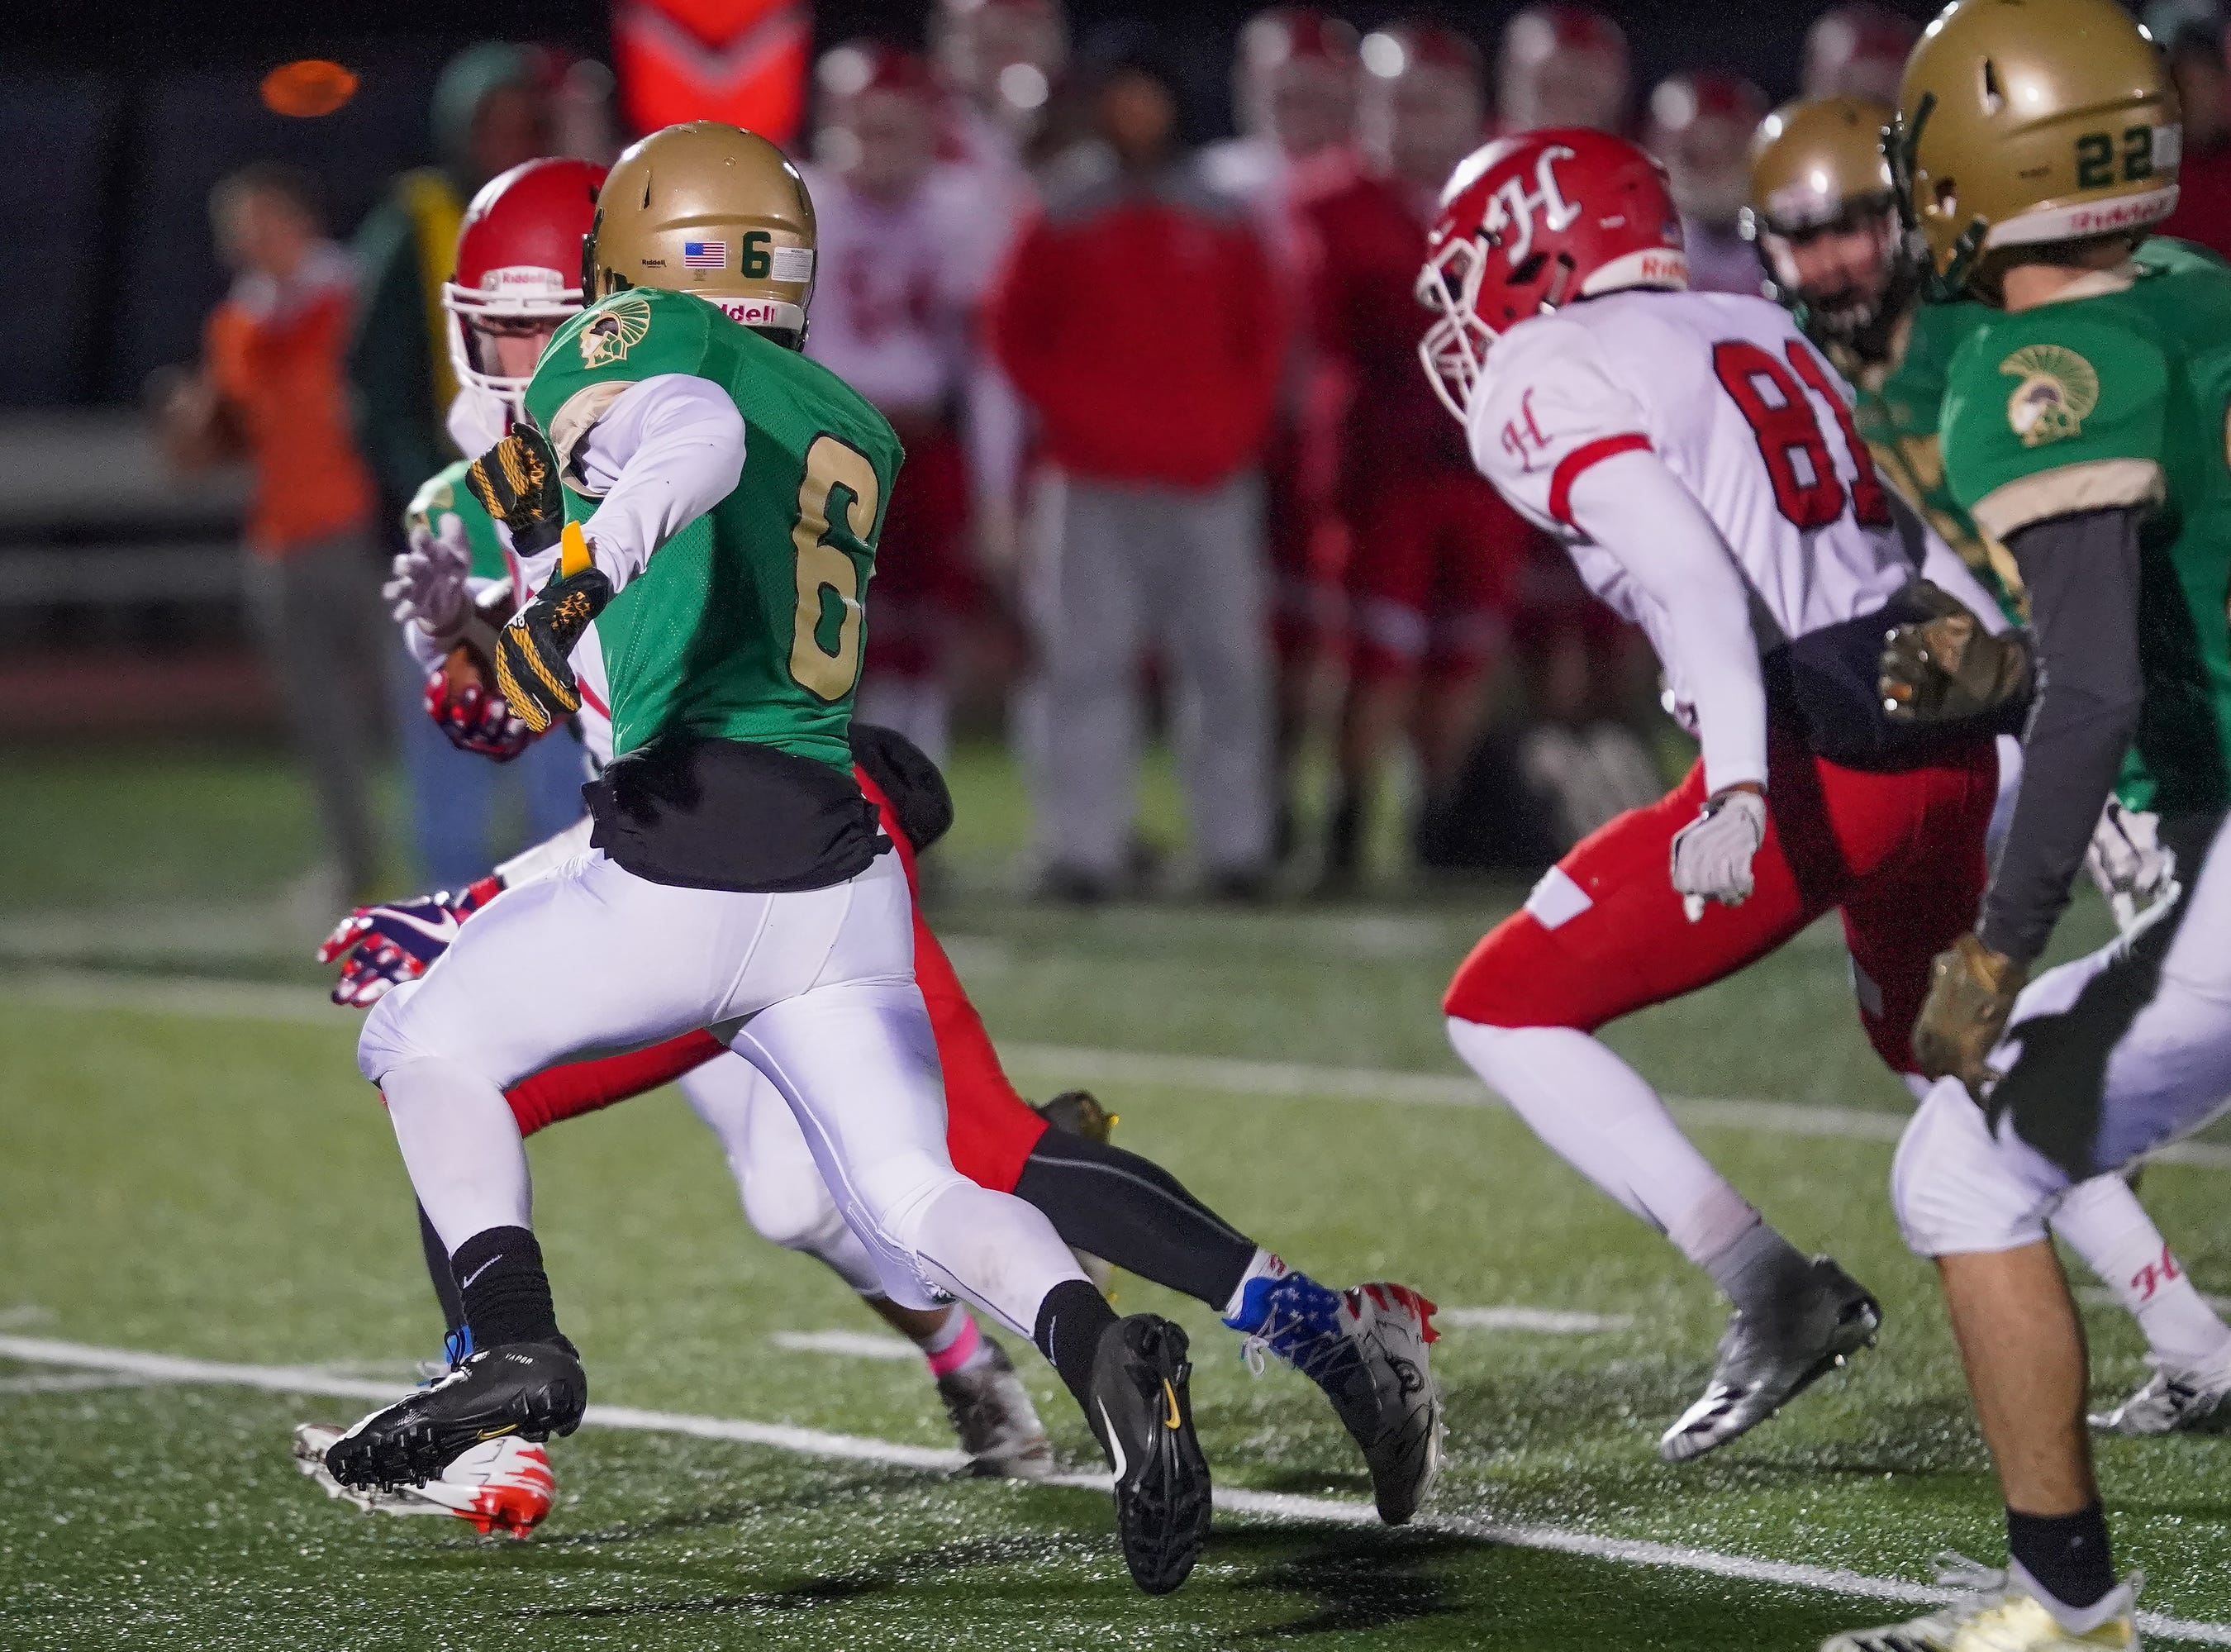 Braden Christie (6) of Oshkosh North looks for room to run during a punt return. The Oshkosh North Spartans hosted the Hortonville Polar Bears in an FVA-South conference matchup Friday evening, October 12, 2018 at J. J. Keller Field at Titan Stadium.